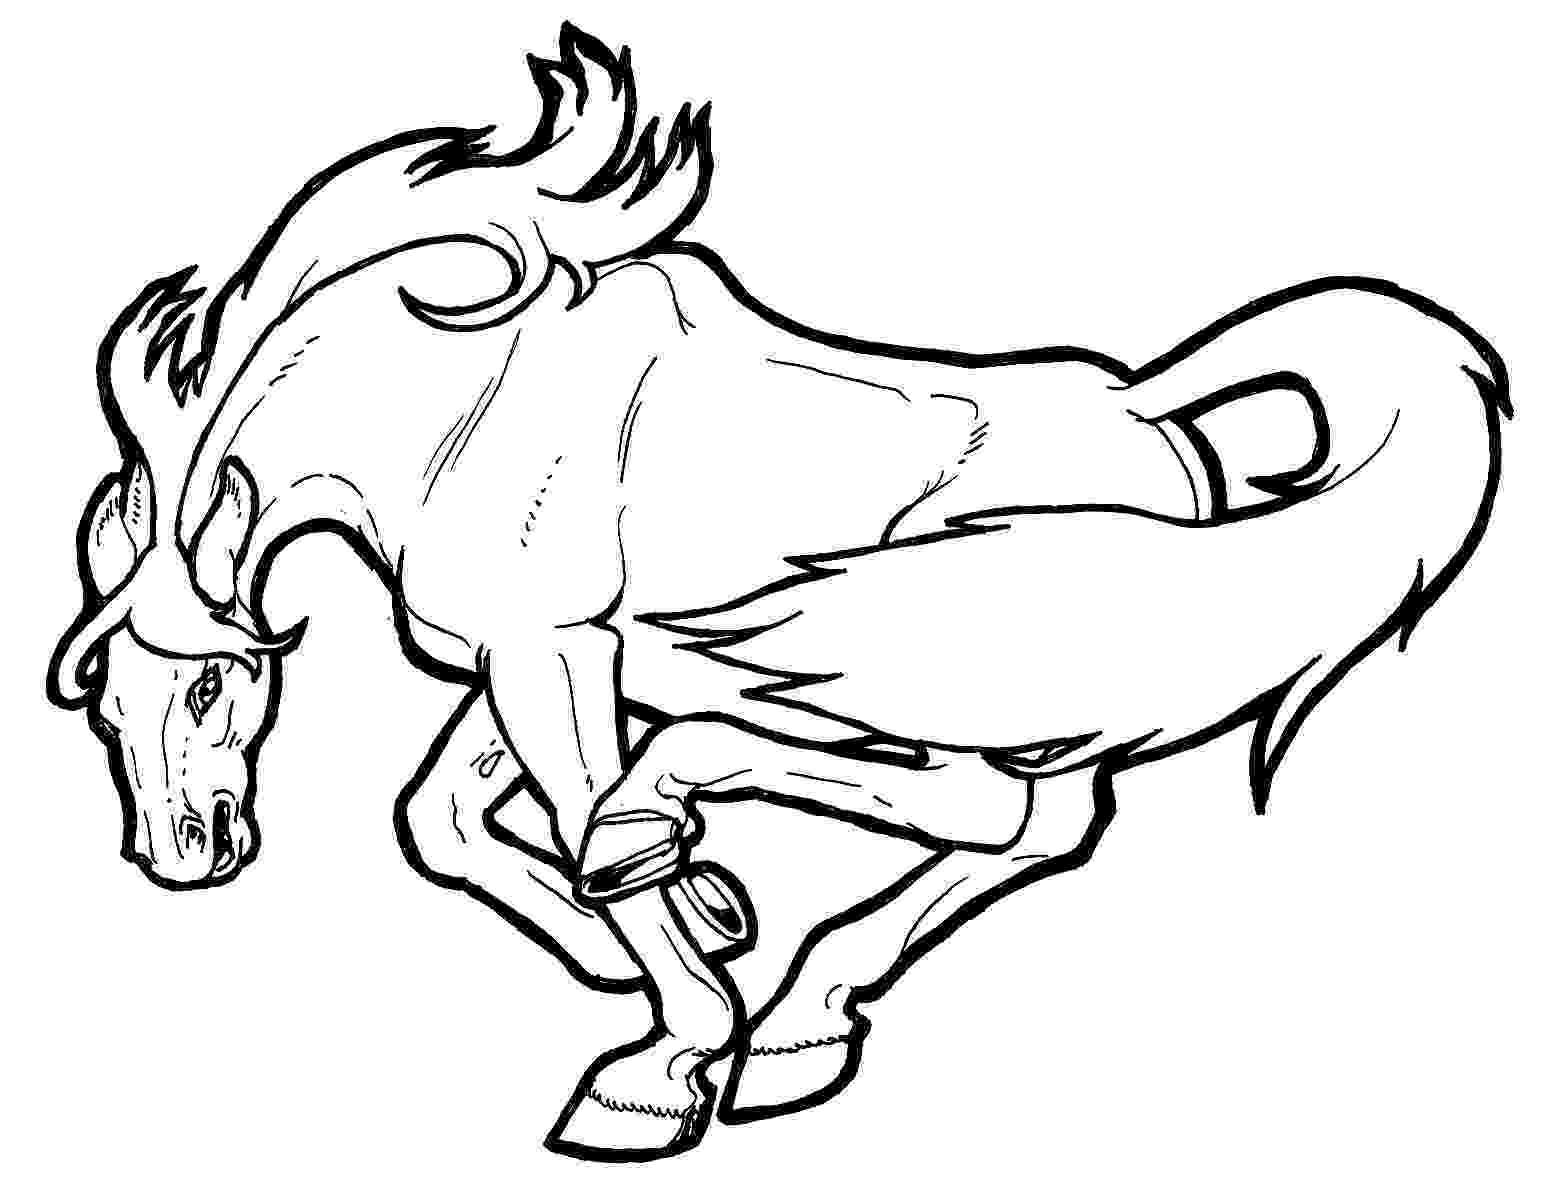 coloring pics of horses horse coloring pages for kids coloring pages for kids pics coloring horses of